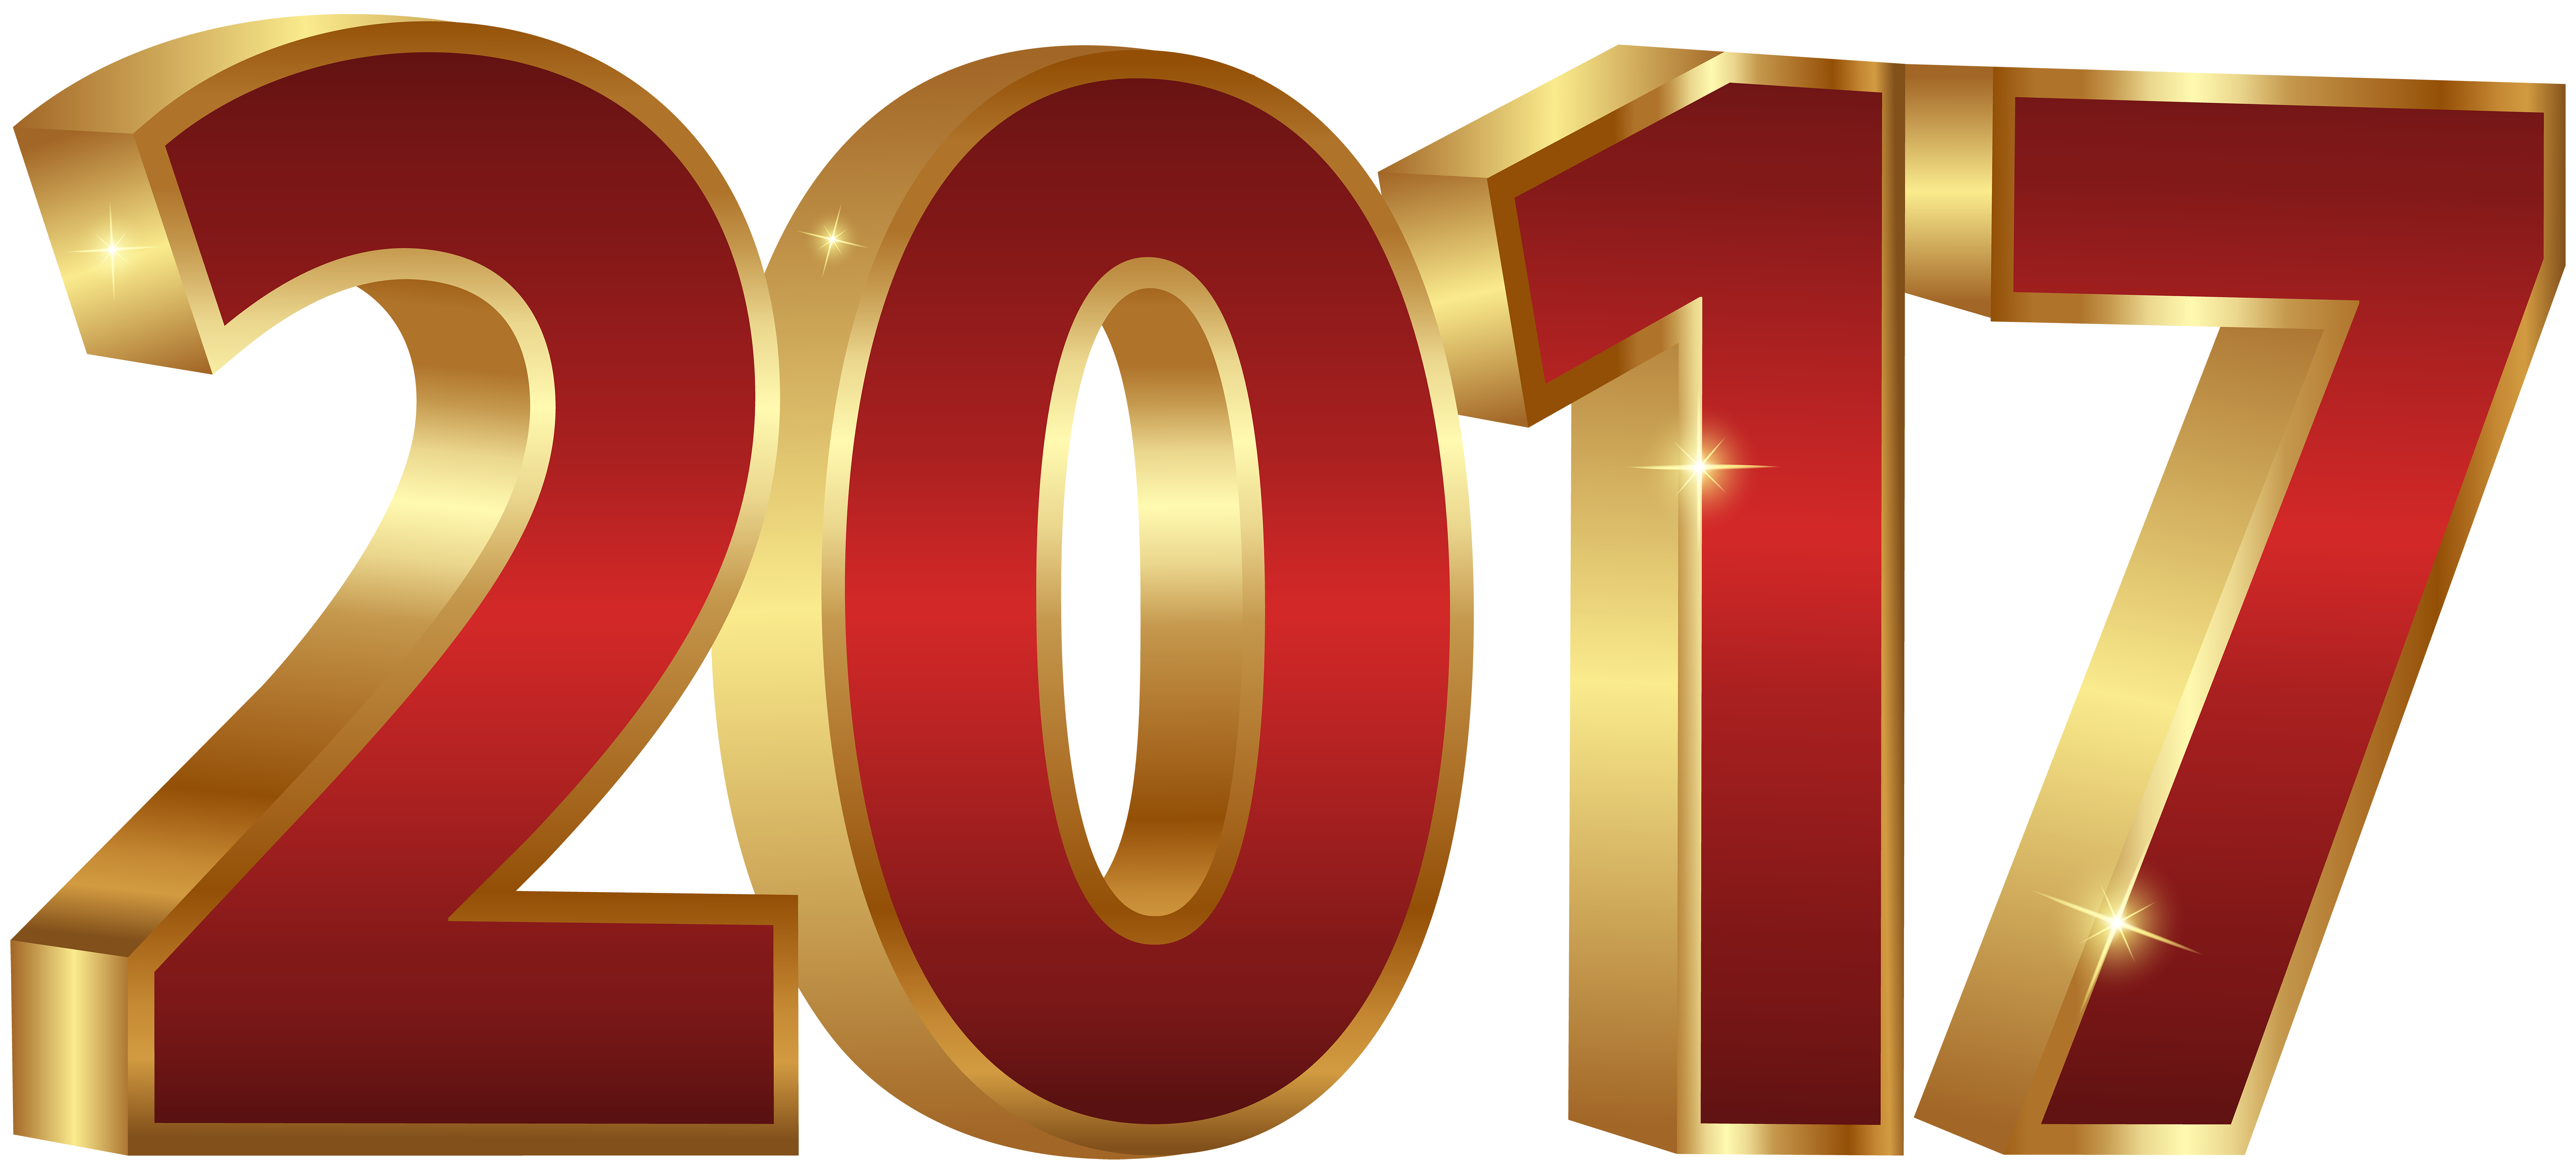 Golden 2017 PNG Clipart Image New Year 2018.